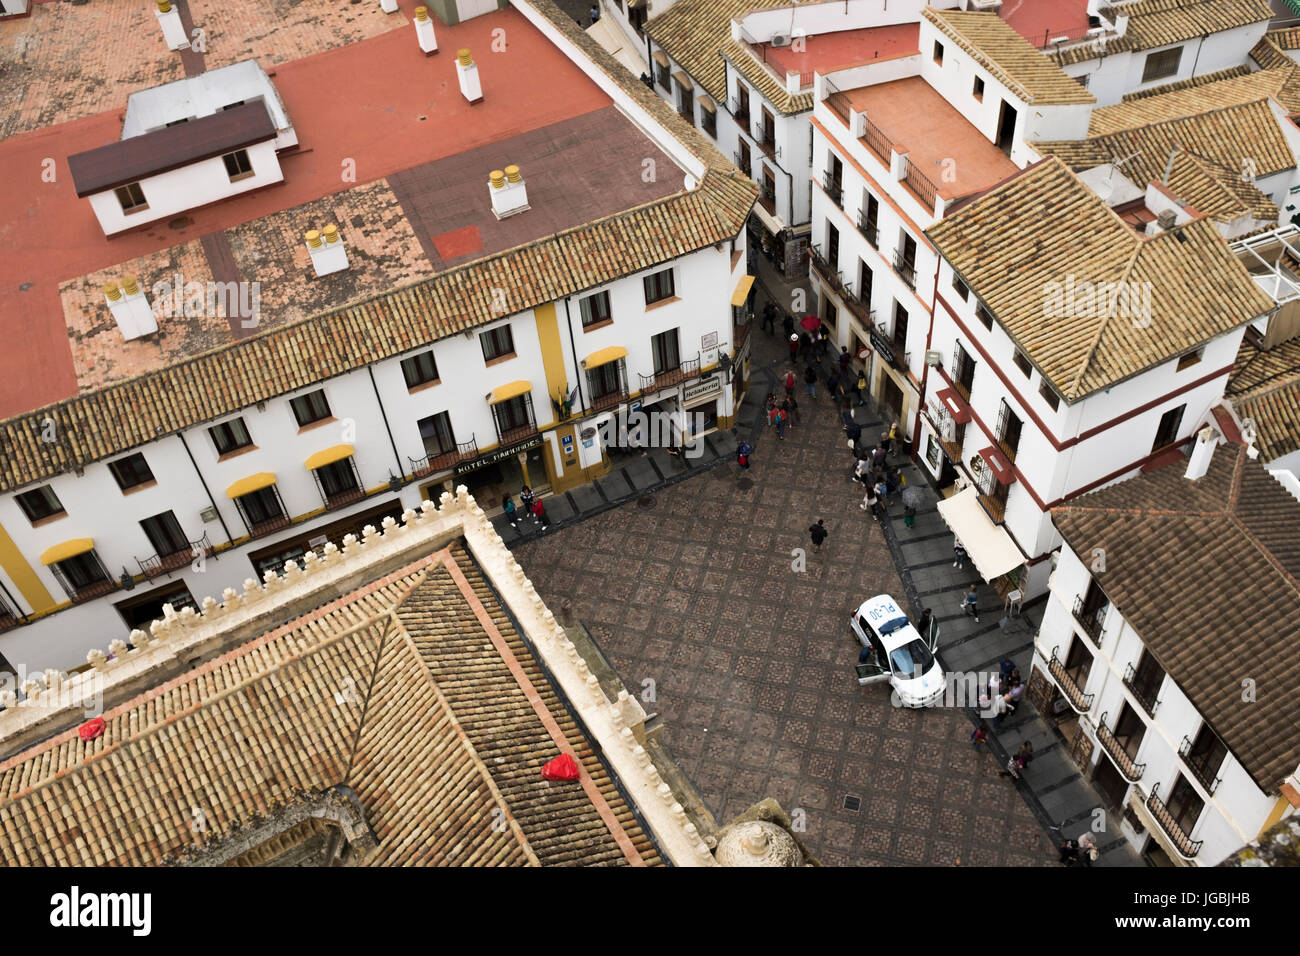 Aerial view of Calle Cardenal Herrero, from the Mezquita bell tower, Cordoba, Spain, - Stock Image